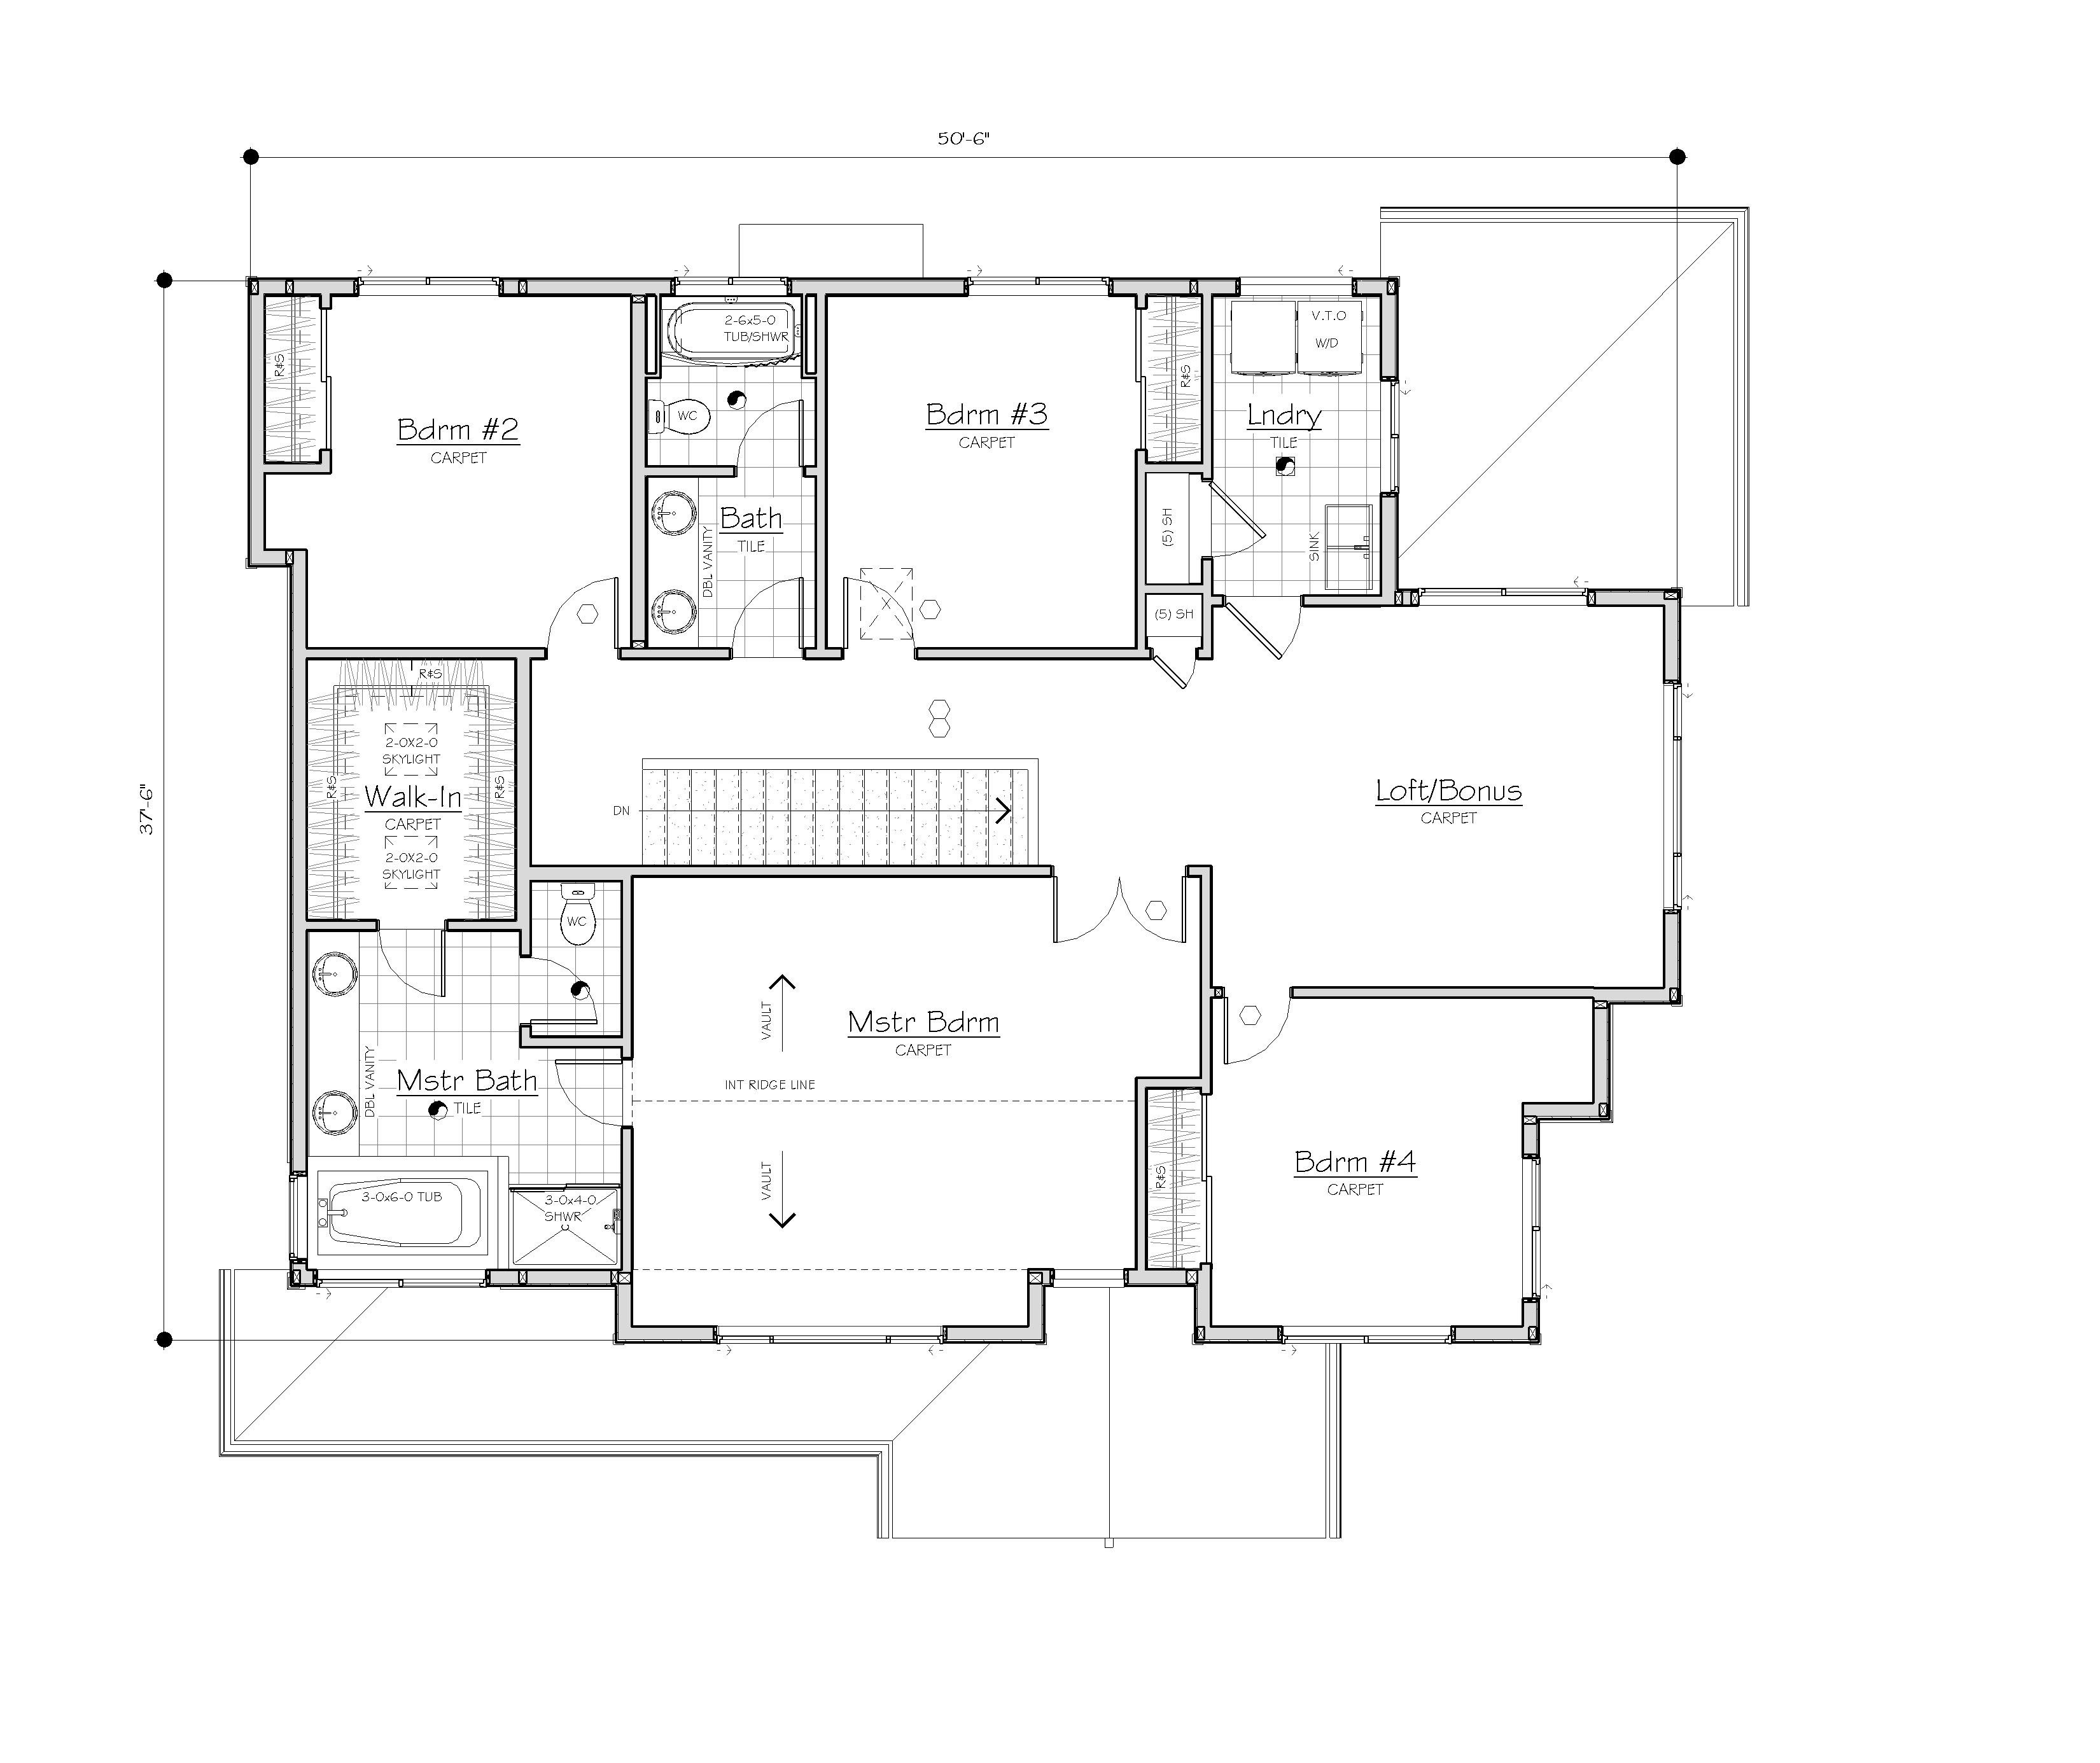 720 olympia ave ne lot 4 custom homes seattle bellevue for Copying house plans